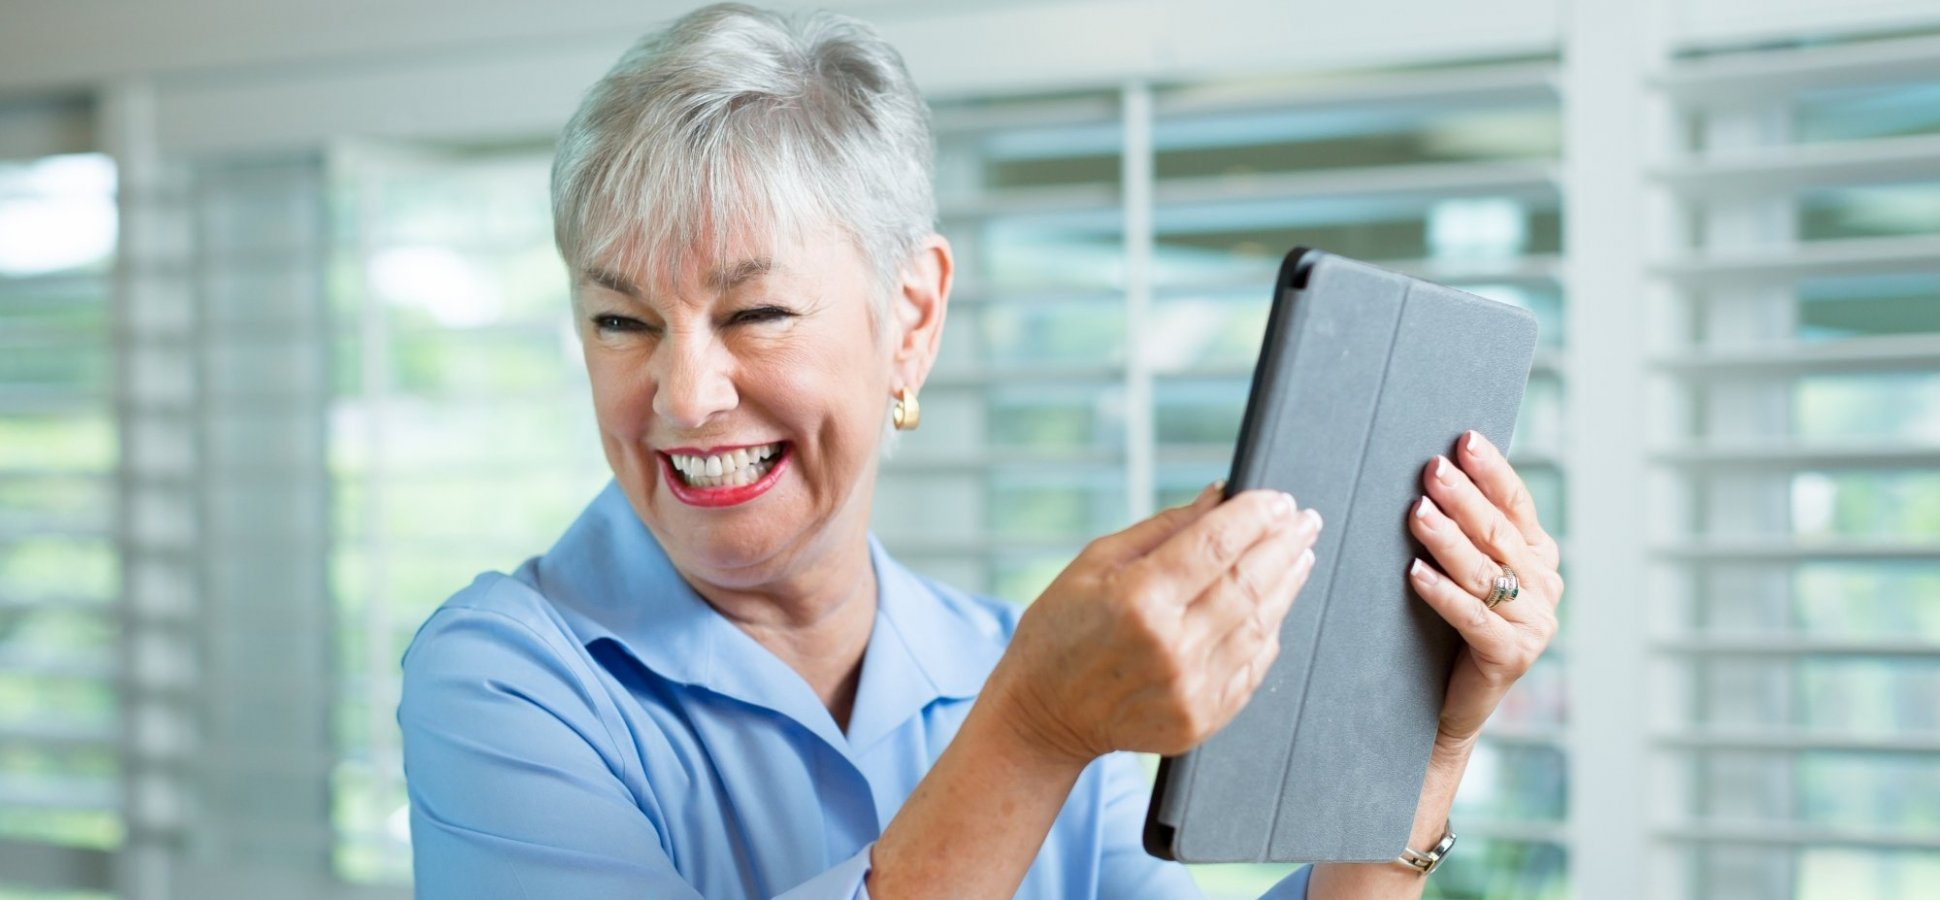 7 Workplace Trends to Attract Boomers (and Other Generations) in 2020